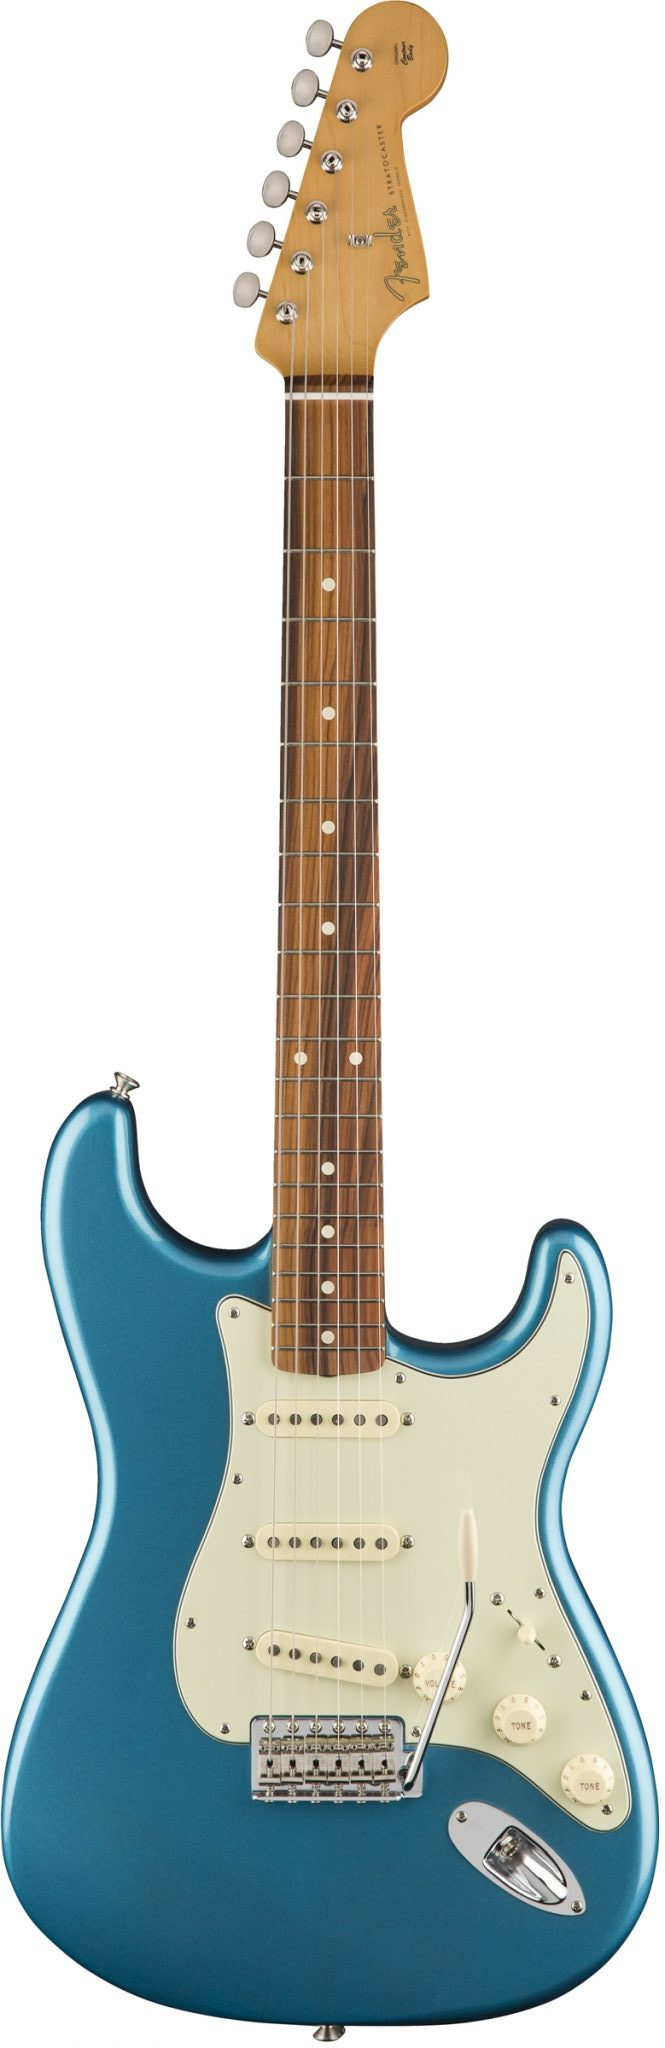 Fender Classic Series '60's Stratocaster